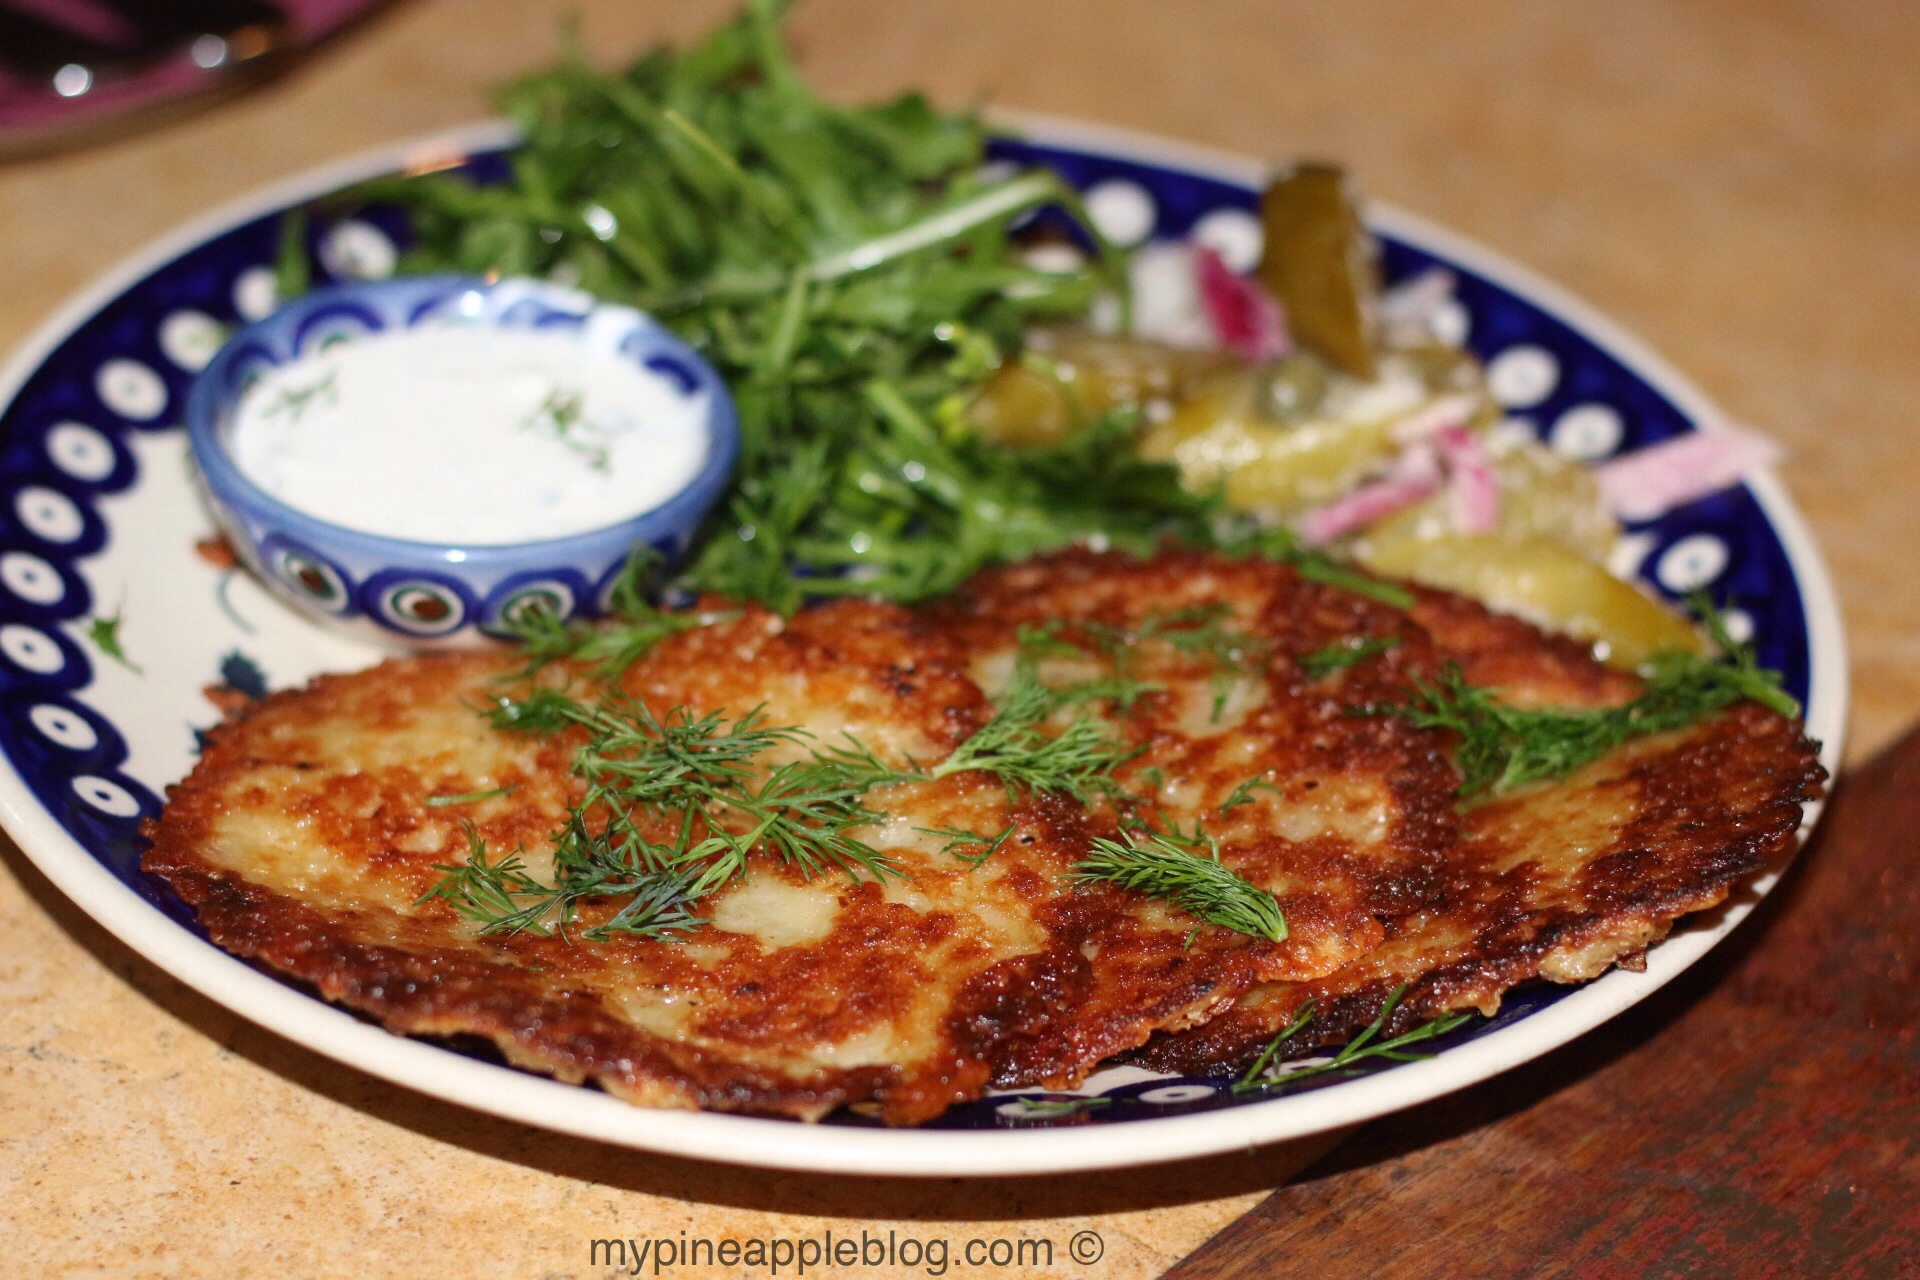 Some much needed carbs in the form of potato blintzes with dill and sour cream